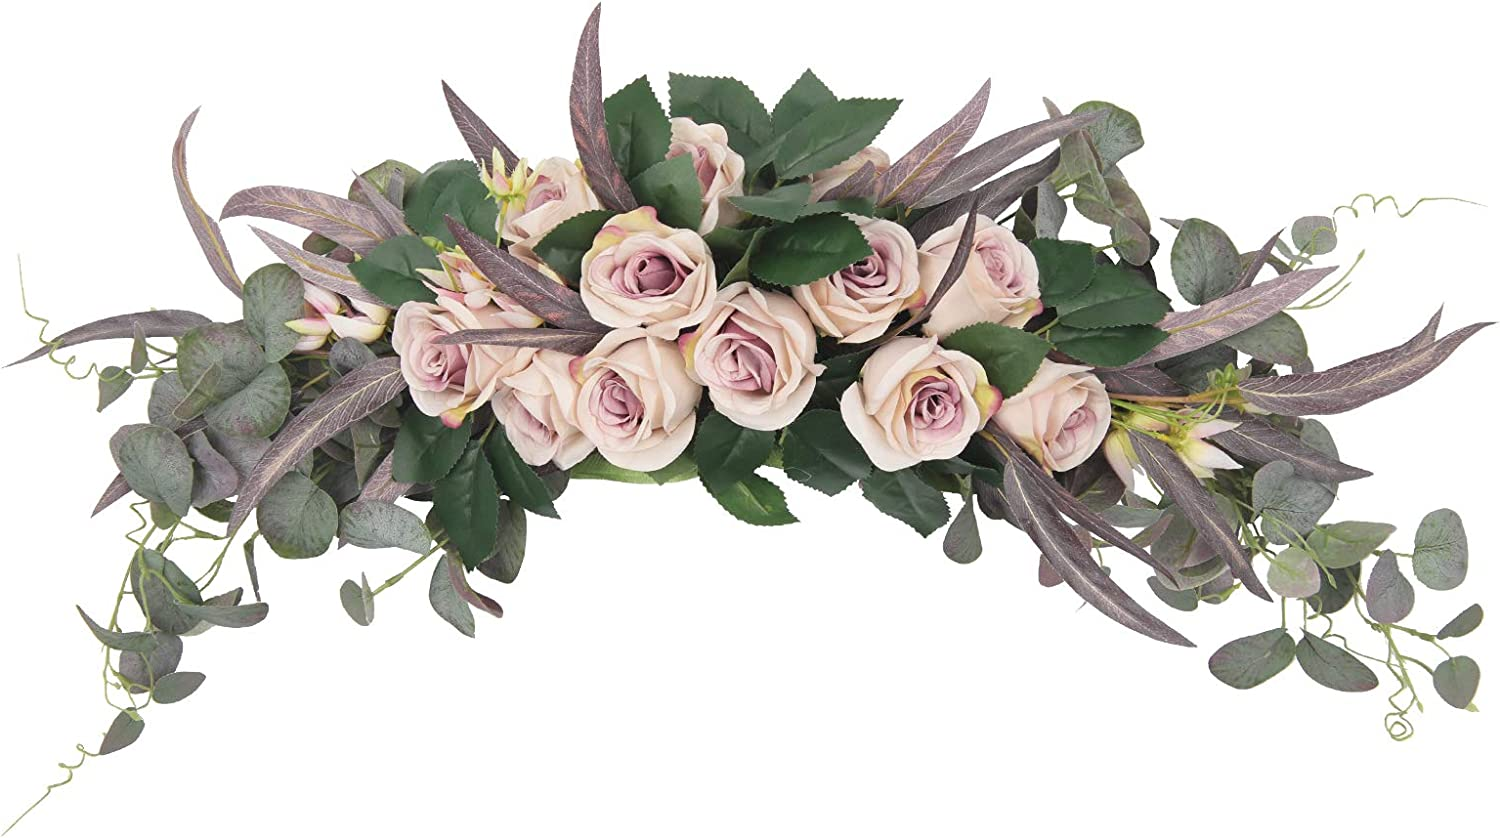 HiiARug Artificial Rose Flower Swag, 31 Inch Decorative Swag with Light Pink Roses Hydrangeas Eucalyptus Leaves for Home Room Garden Lintel Wedding Arch Party Decor (31 inch, Lilac Rose)